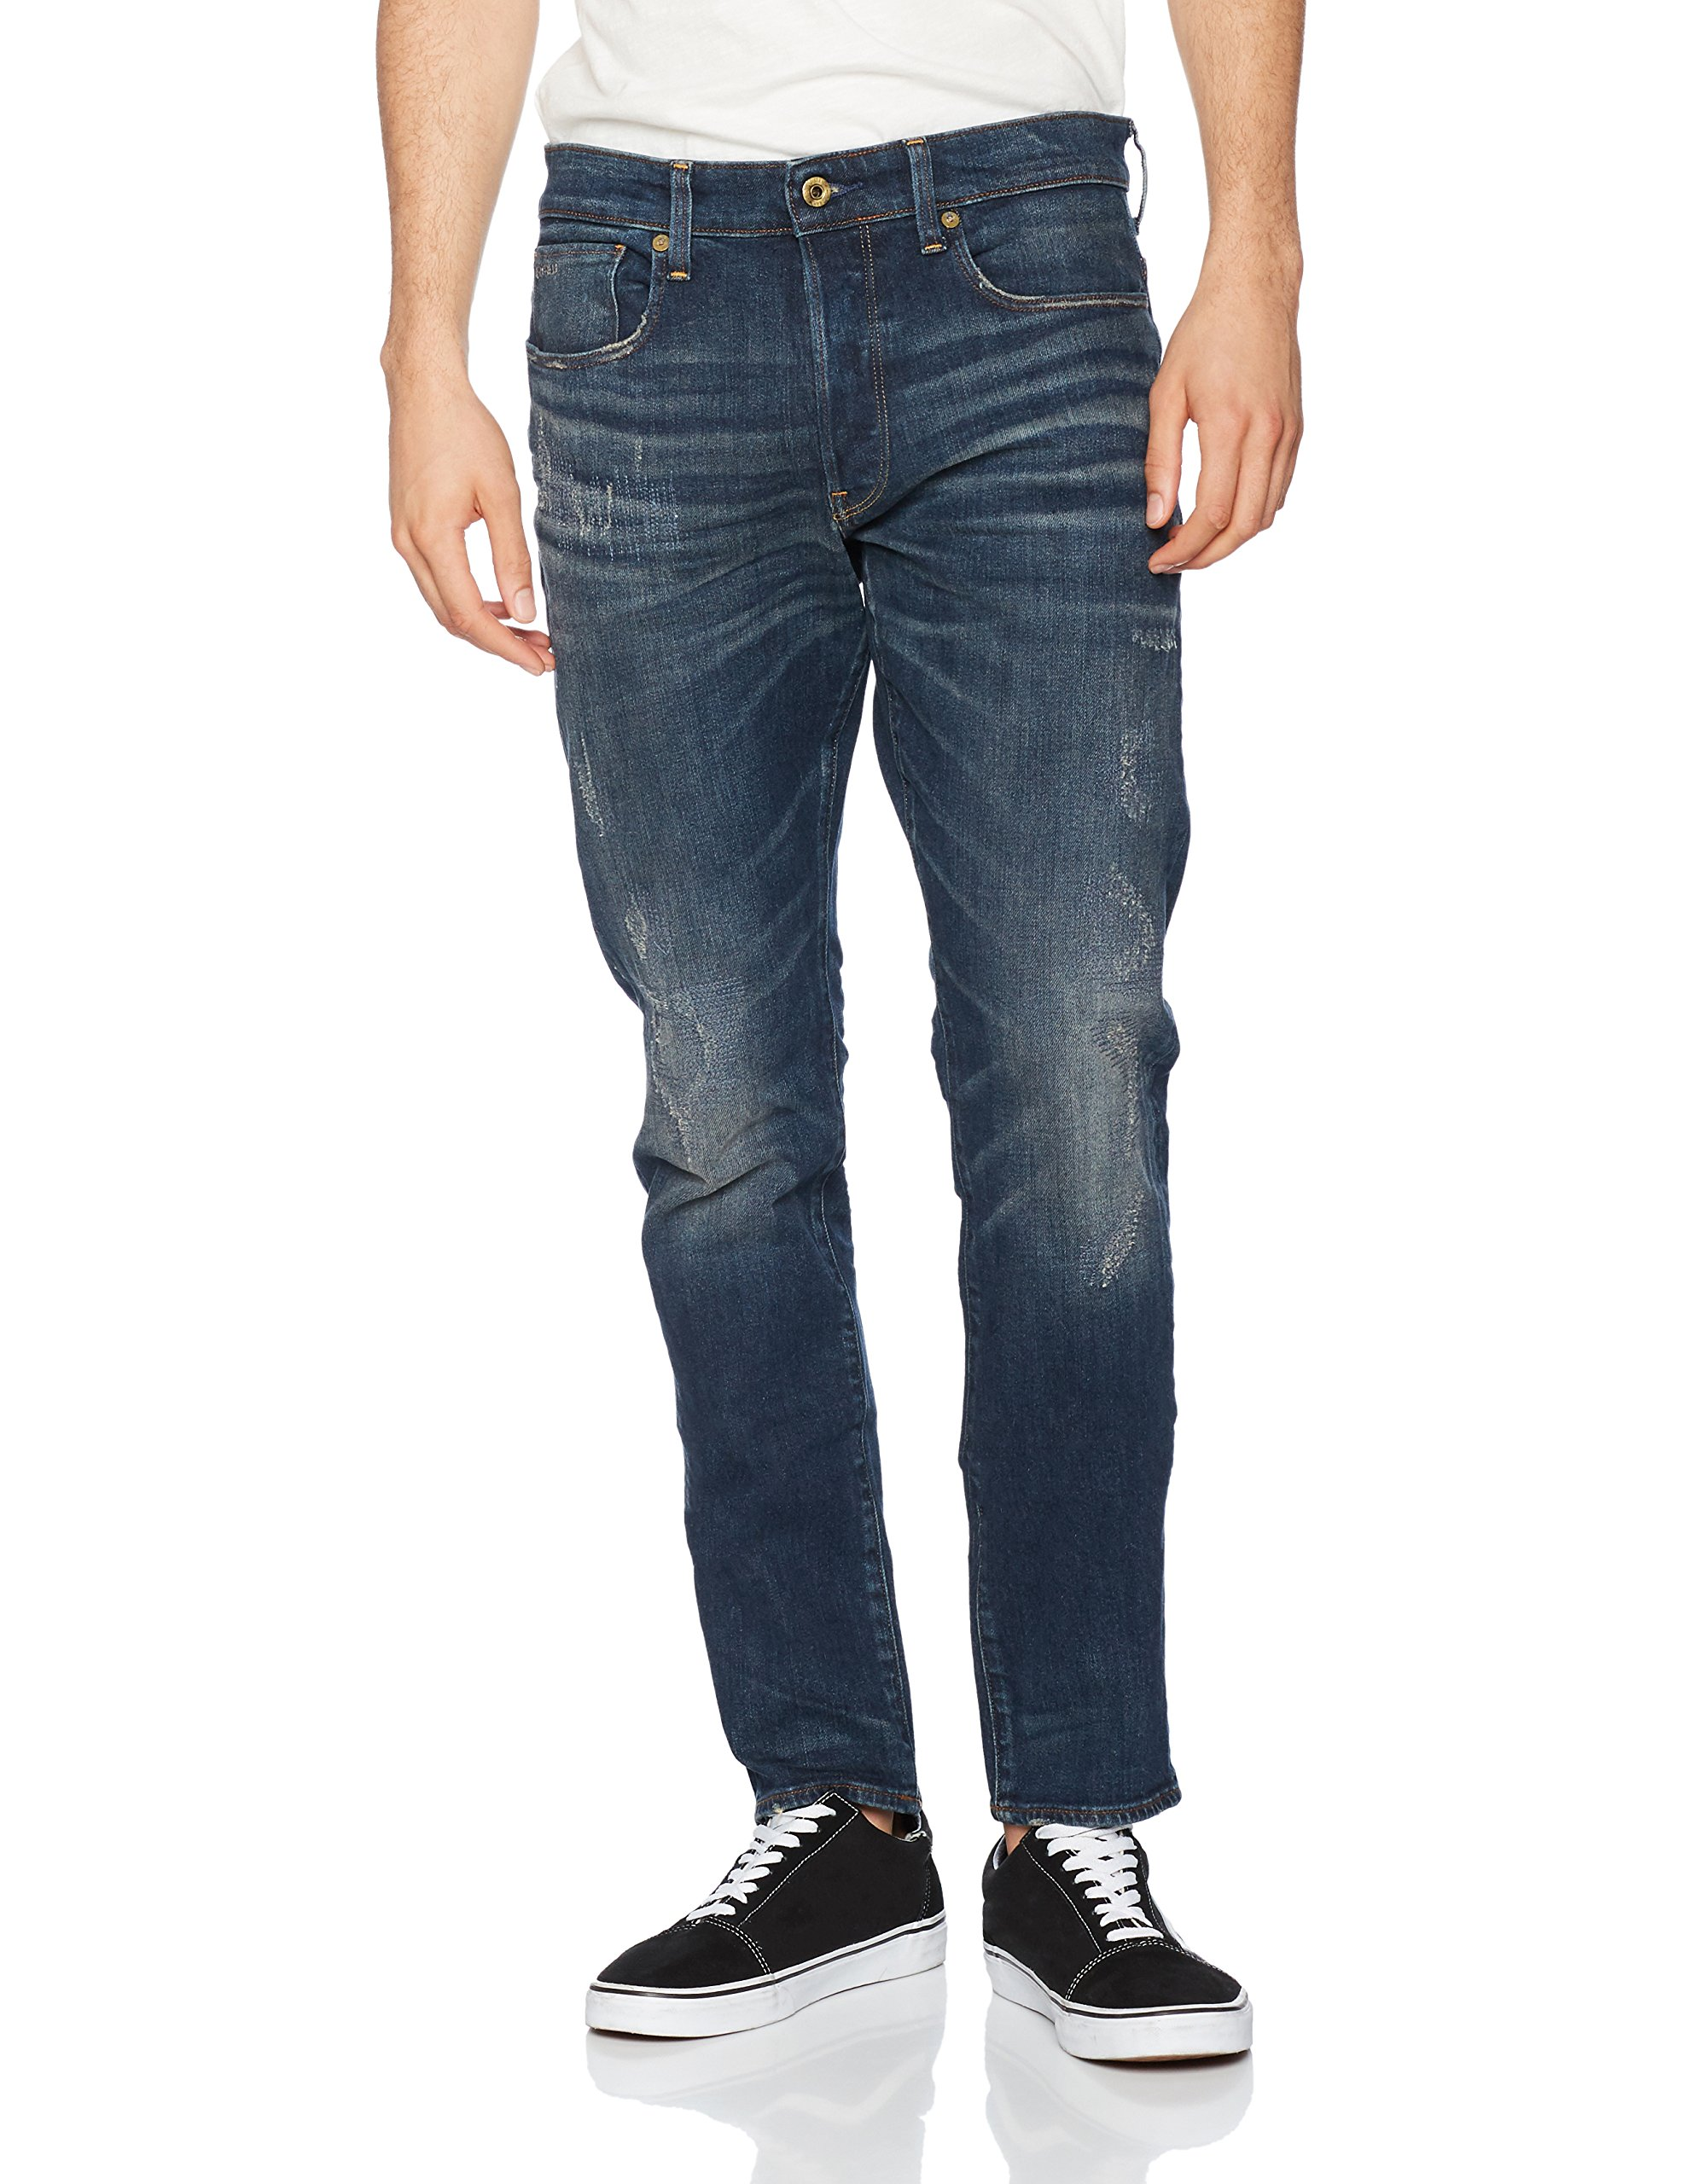 Aged star Raw 9116 641634w34l 3301 JeansBleumedium Restored Homme G Tapered' bfyvY6g7